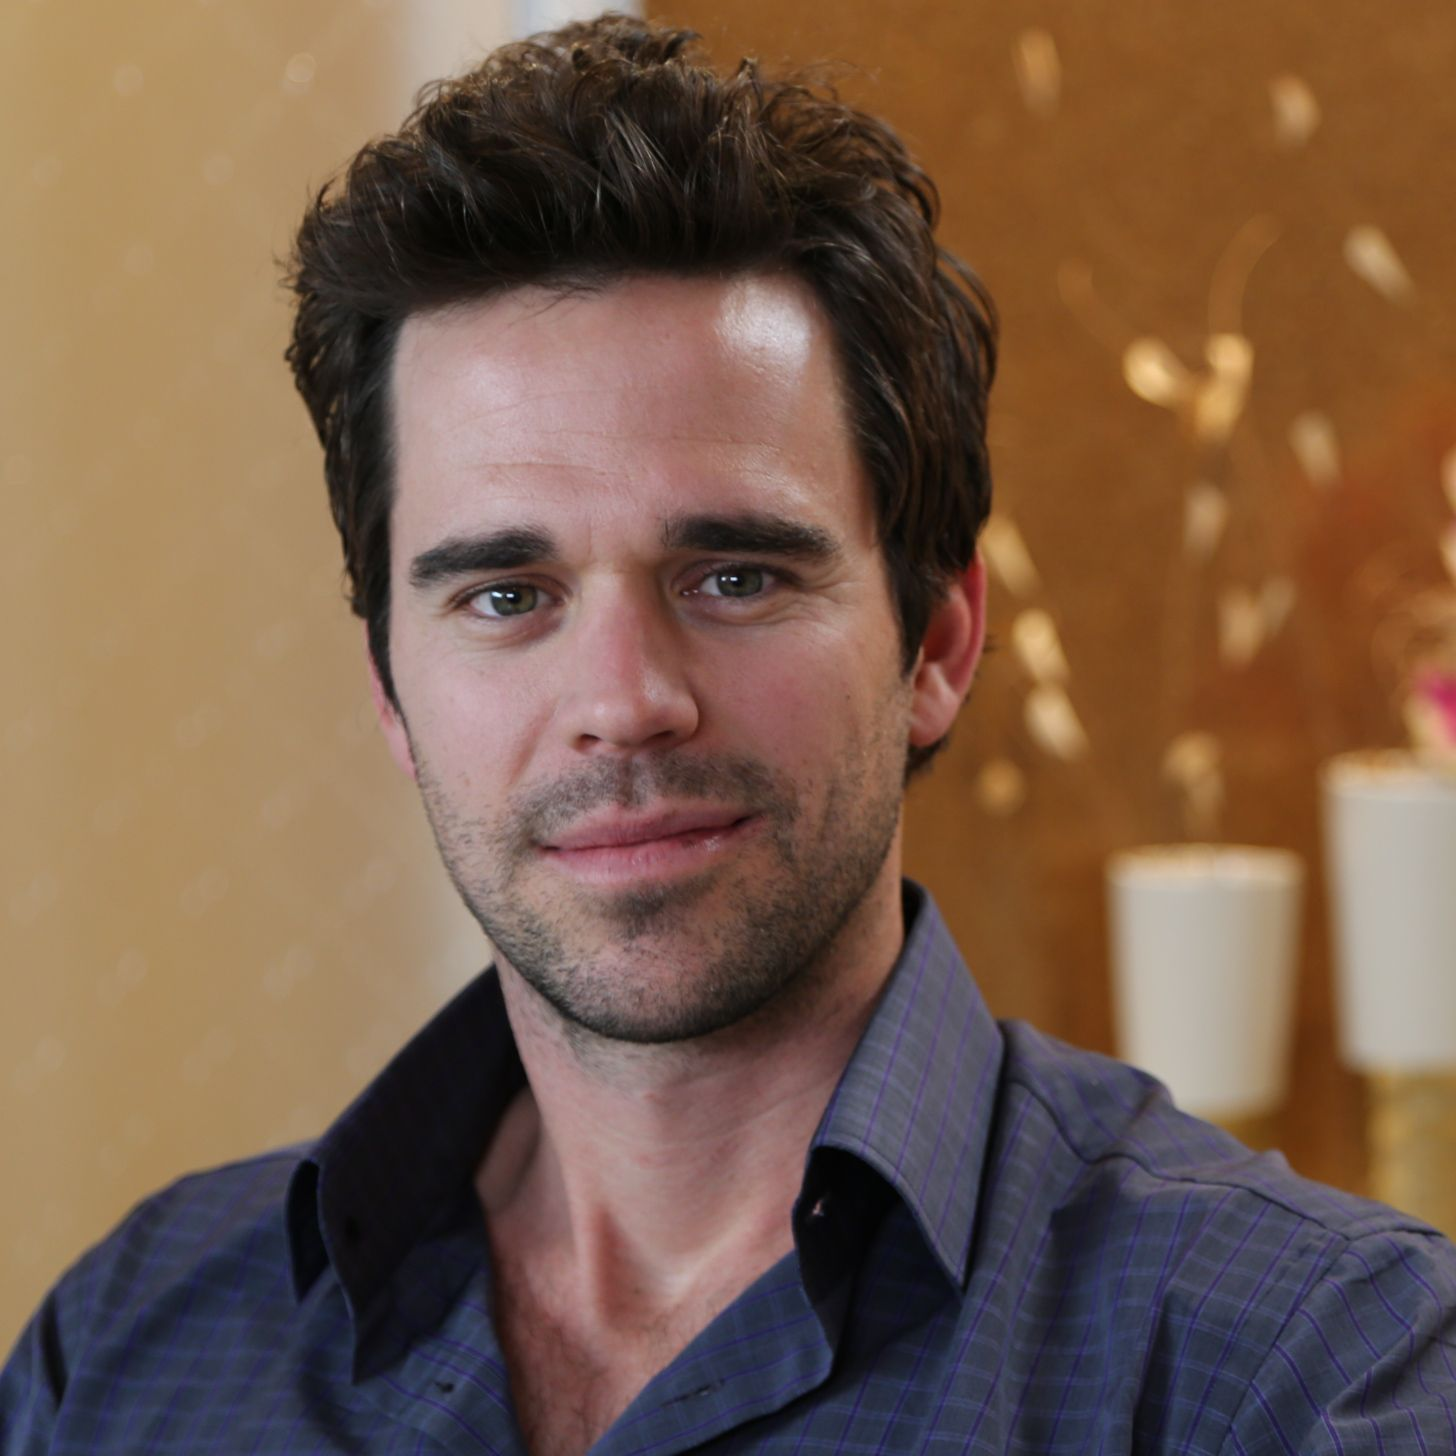 david walton footballerdavid walton cultural studies, david walton instagram, david walton footballer, david walton, david walton new girl, david walton facebook, david walton superposition, david walton singing, david walton wife, david walton imdb, david walton net worth, david walton shirtless, david walton economist, david walton majandra delfino, david walton actor, david walton twitter, david walton masters, david walton parenthood, david walton author, david walton burlesque